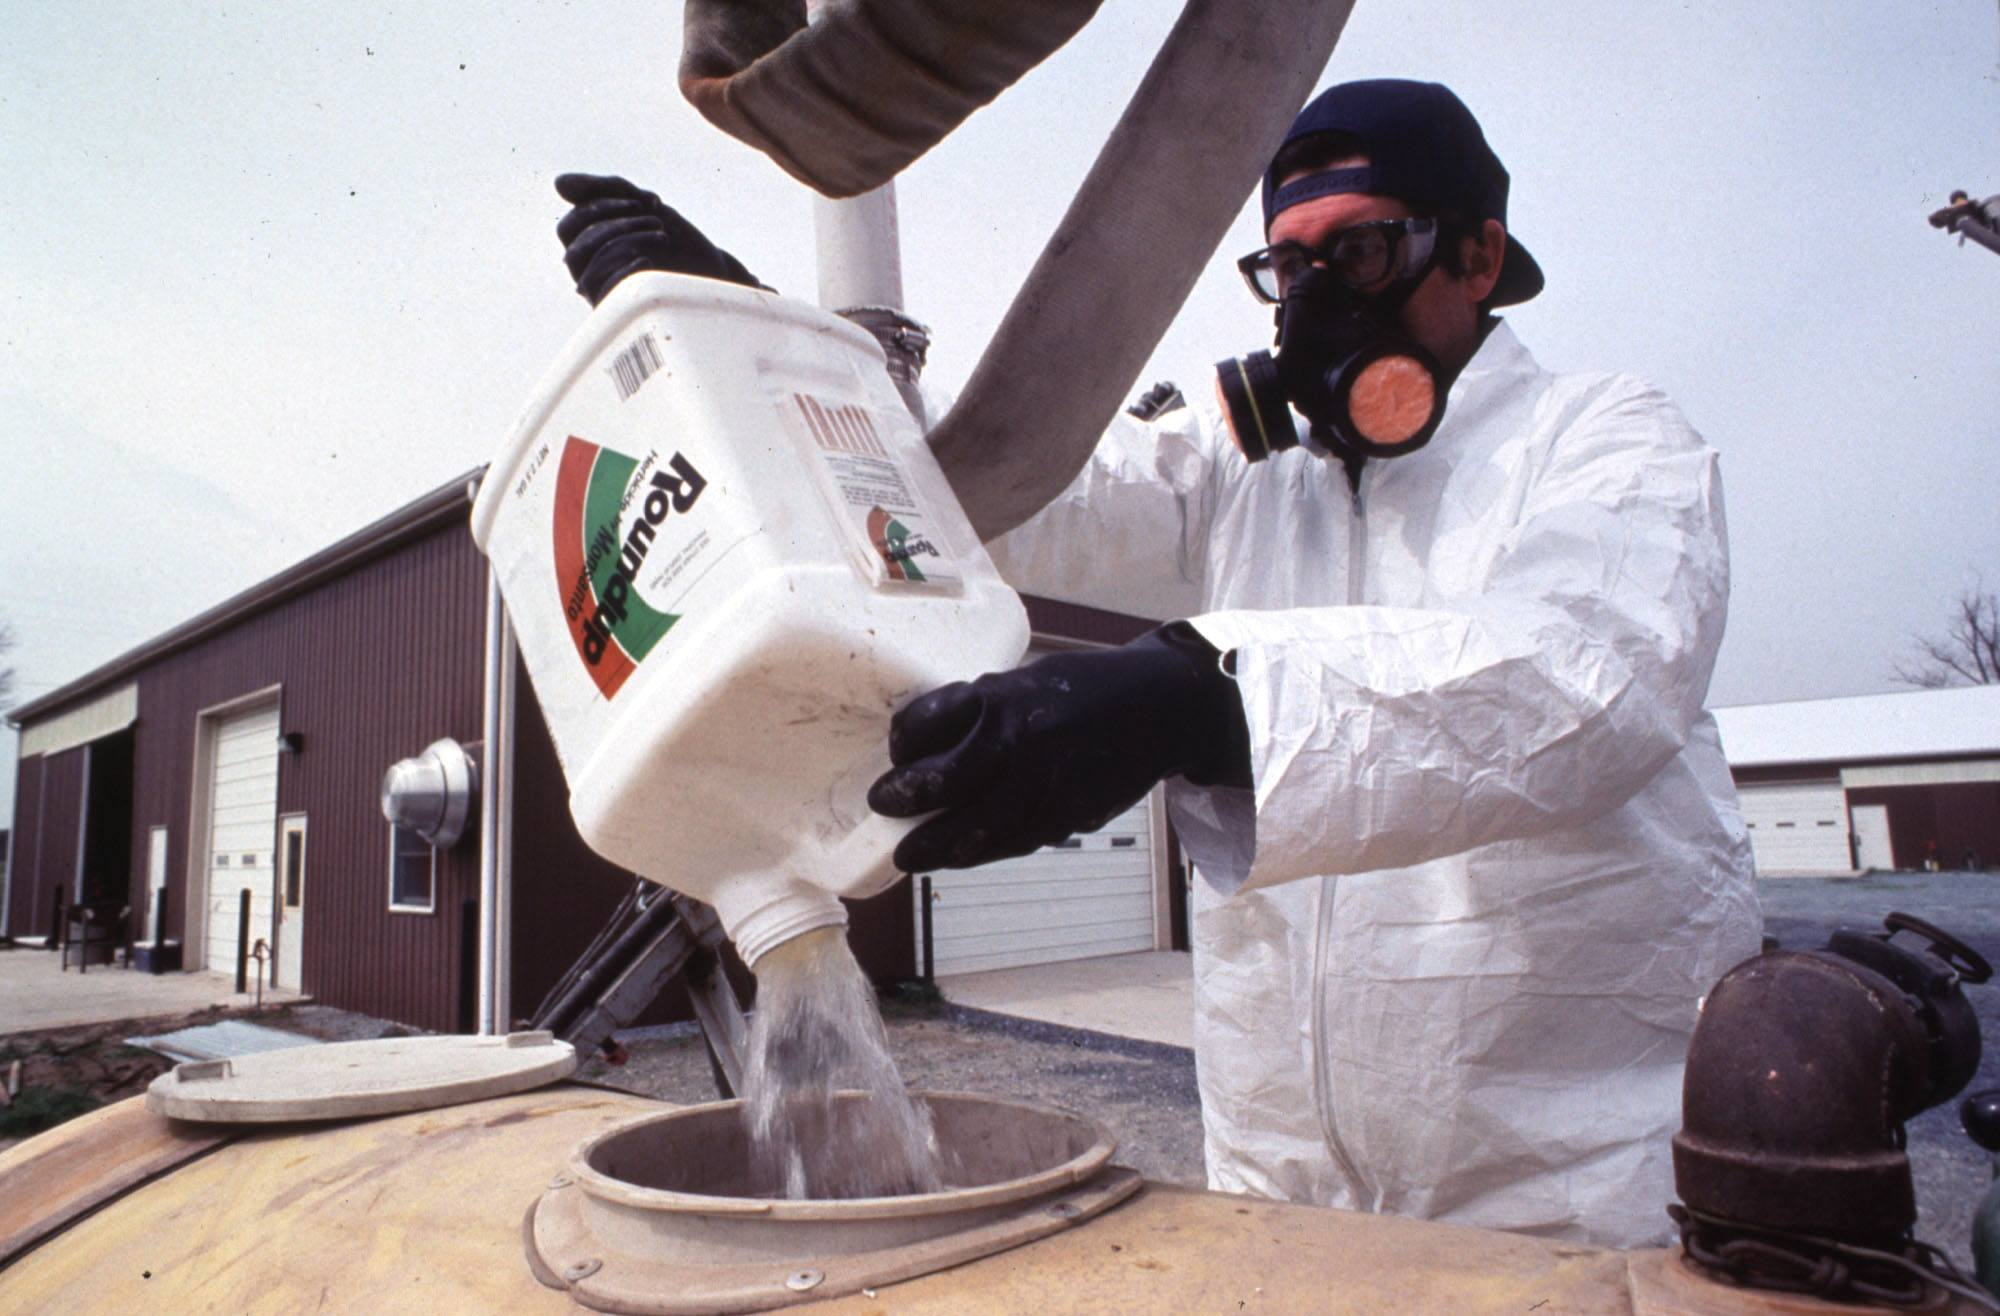 A farm worker handles a common pesticide